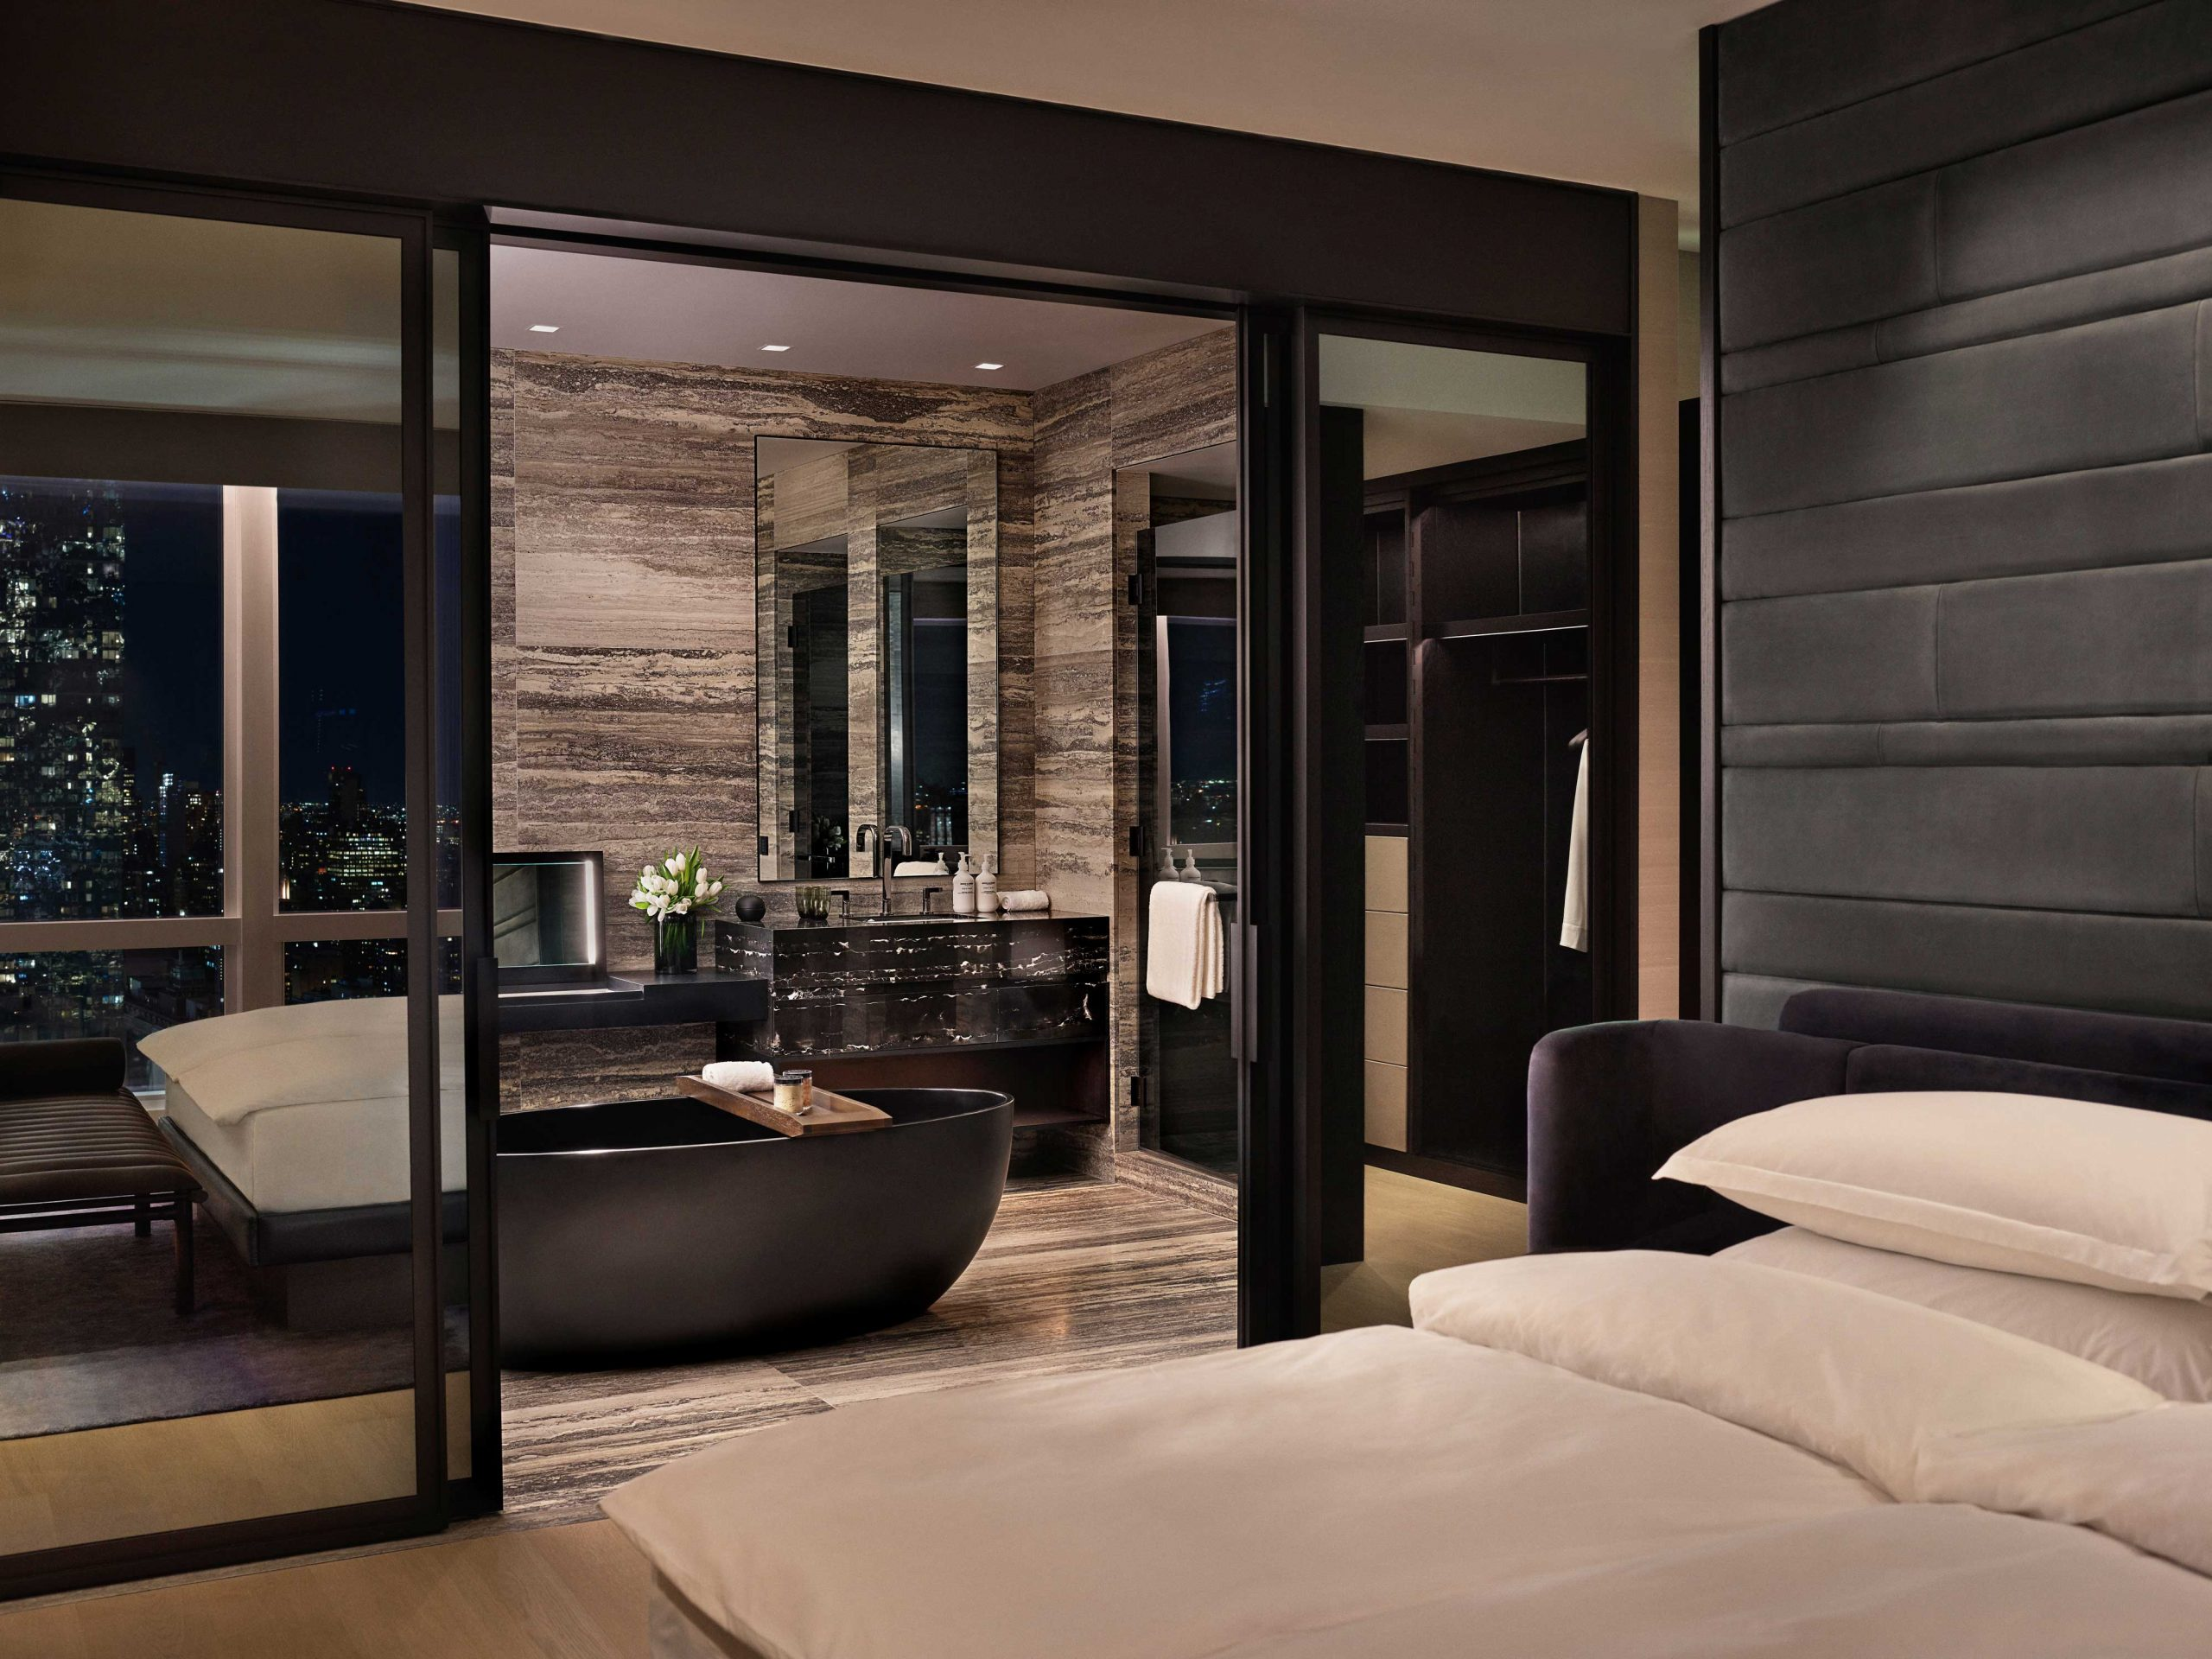 equinoxsuite-bathroom-bedroom-scaled